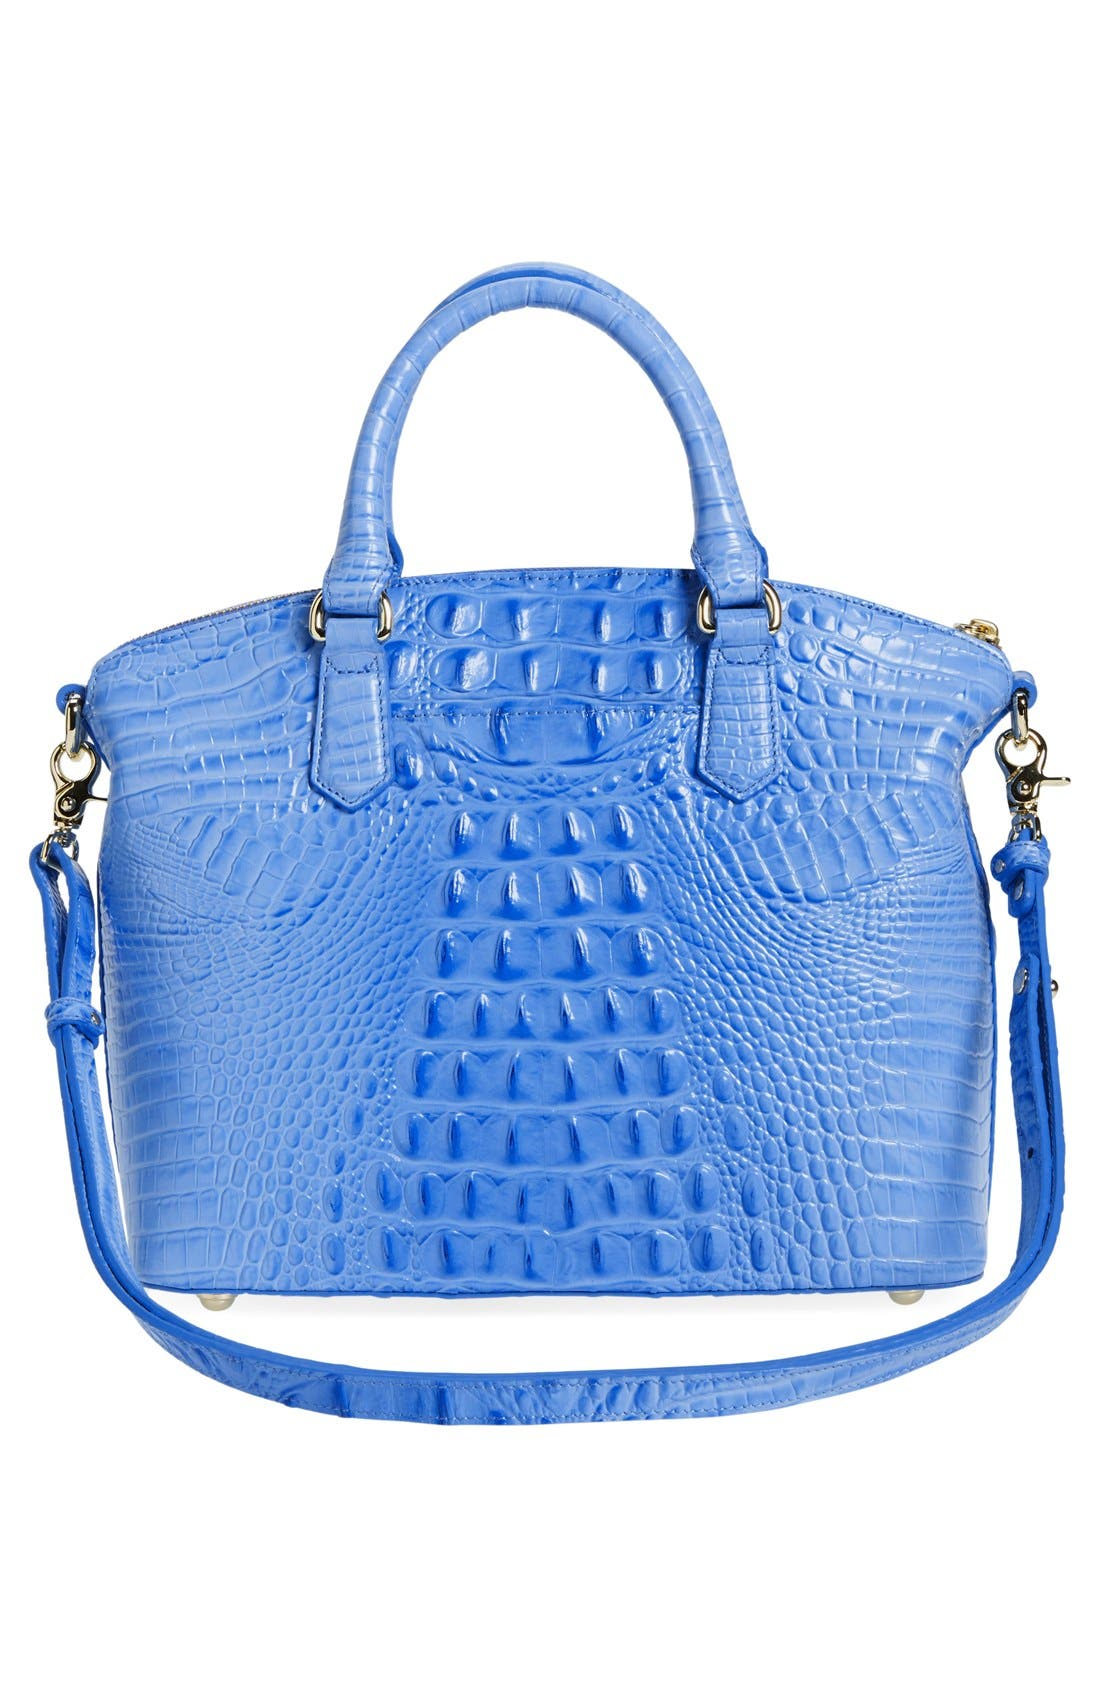 'Medium Duxbury' Croc Embossed Leather Satchel,                             Alternate thumbnail 76, color,